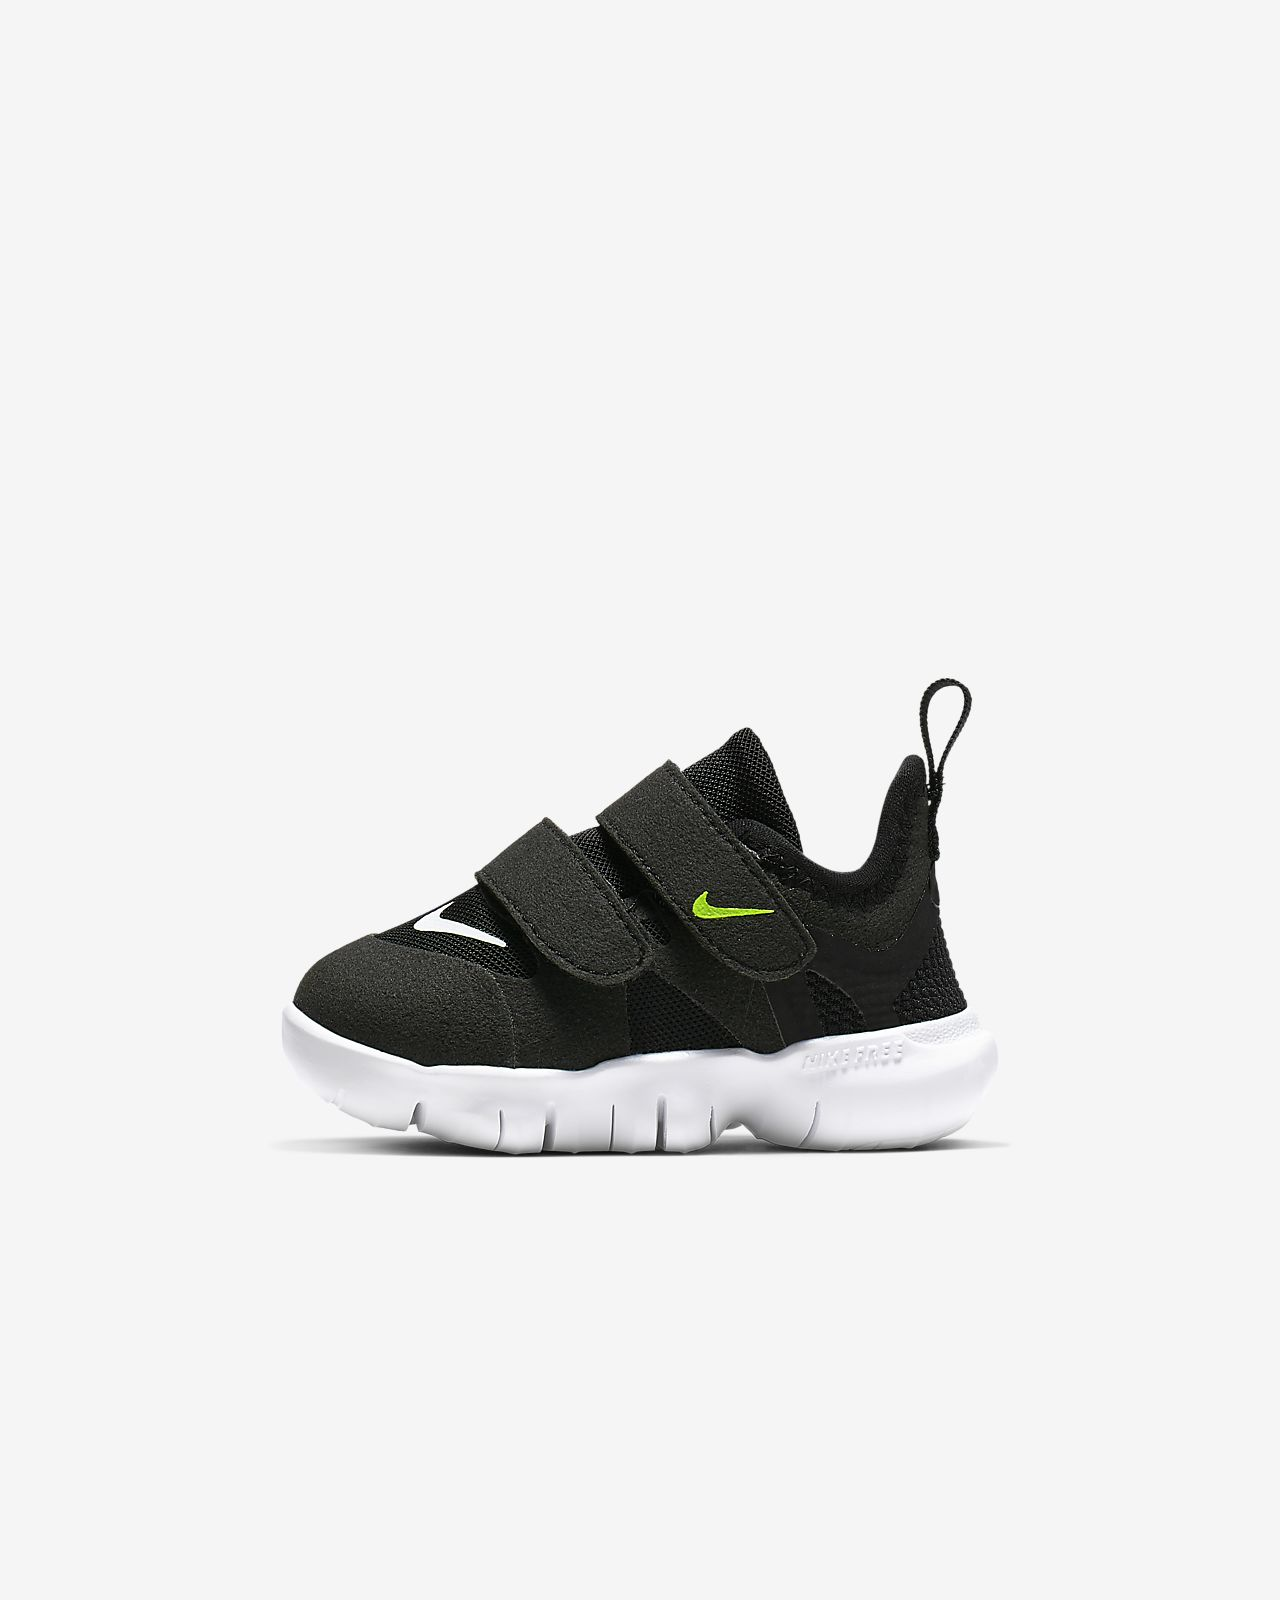 buy online b25d5 9ed04 ... Nike Free RN 5.0 Baby Toddler Shoe